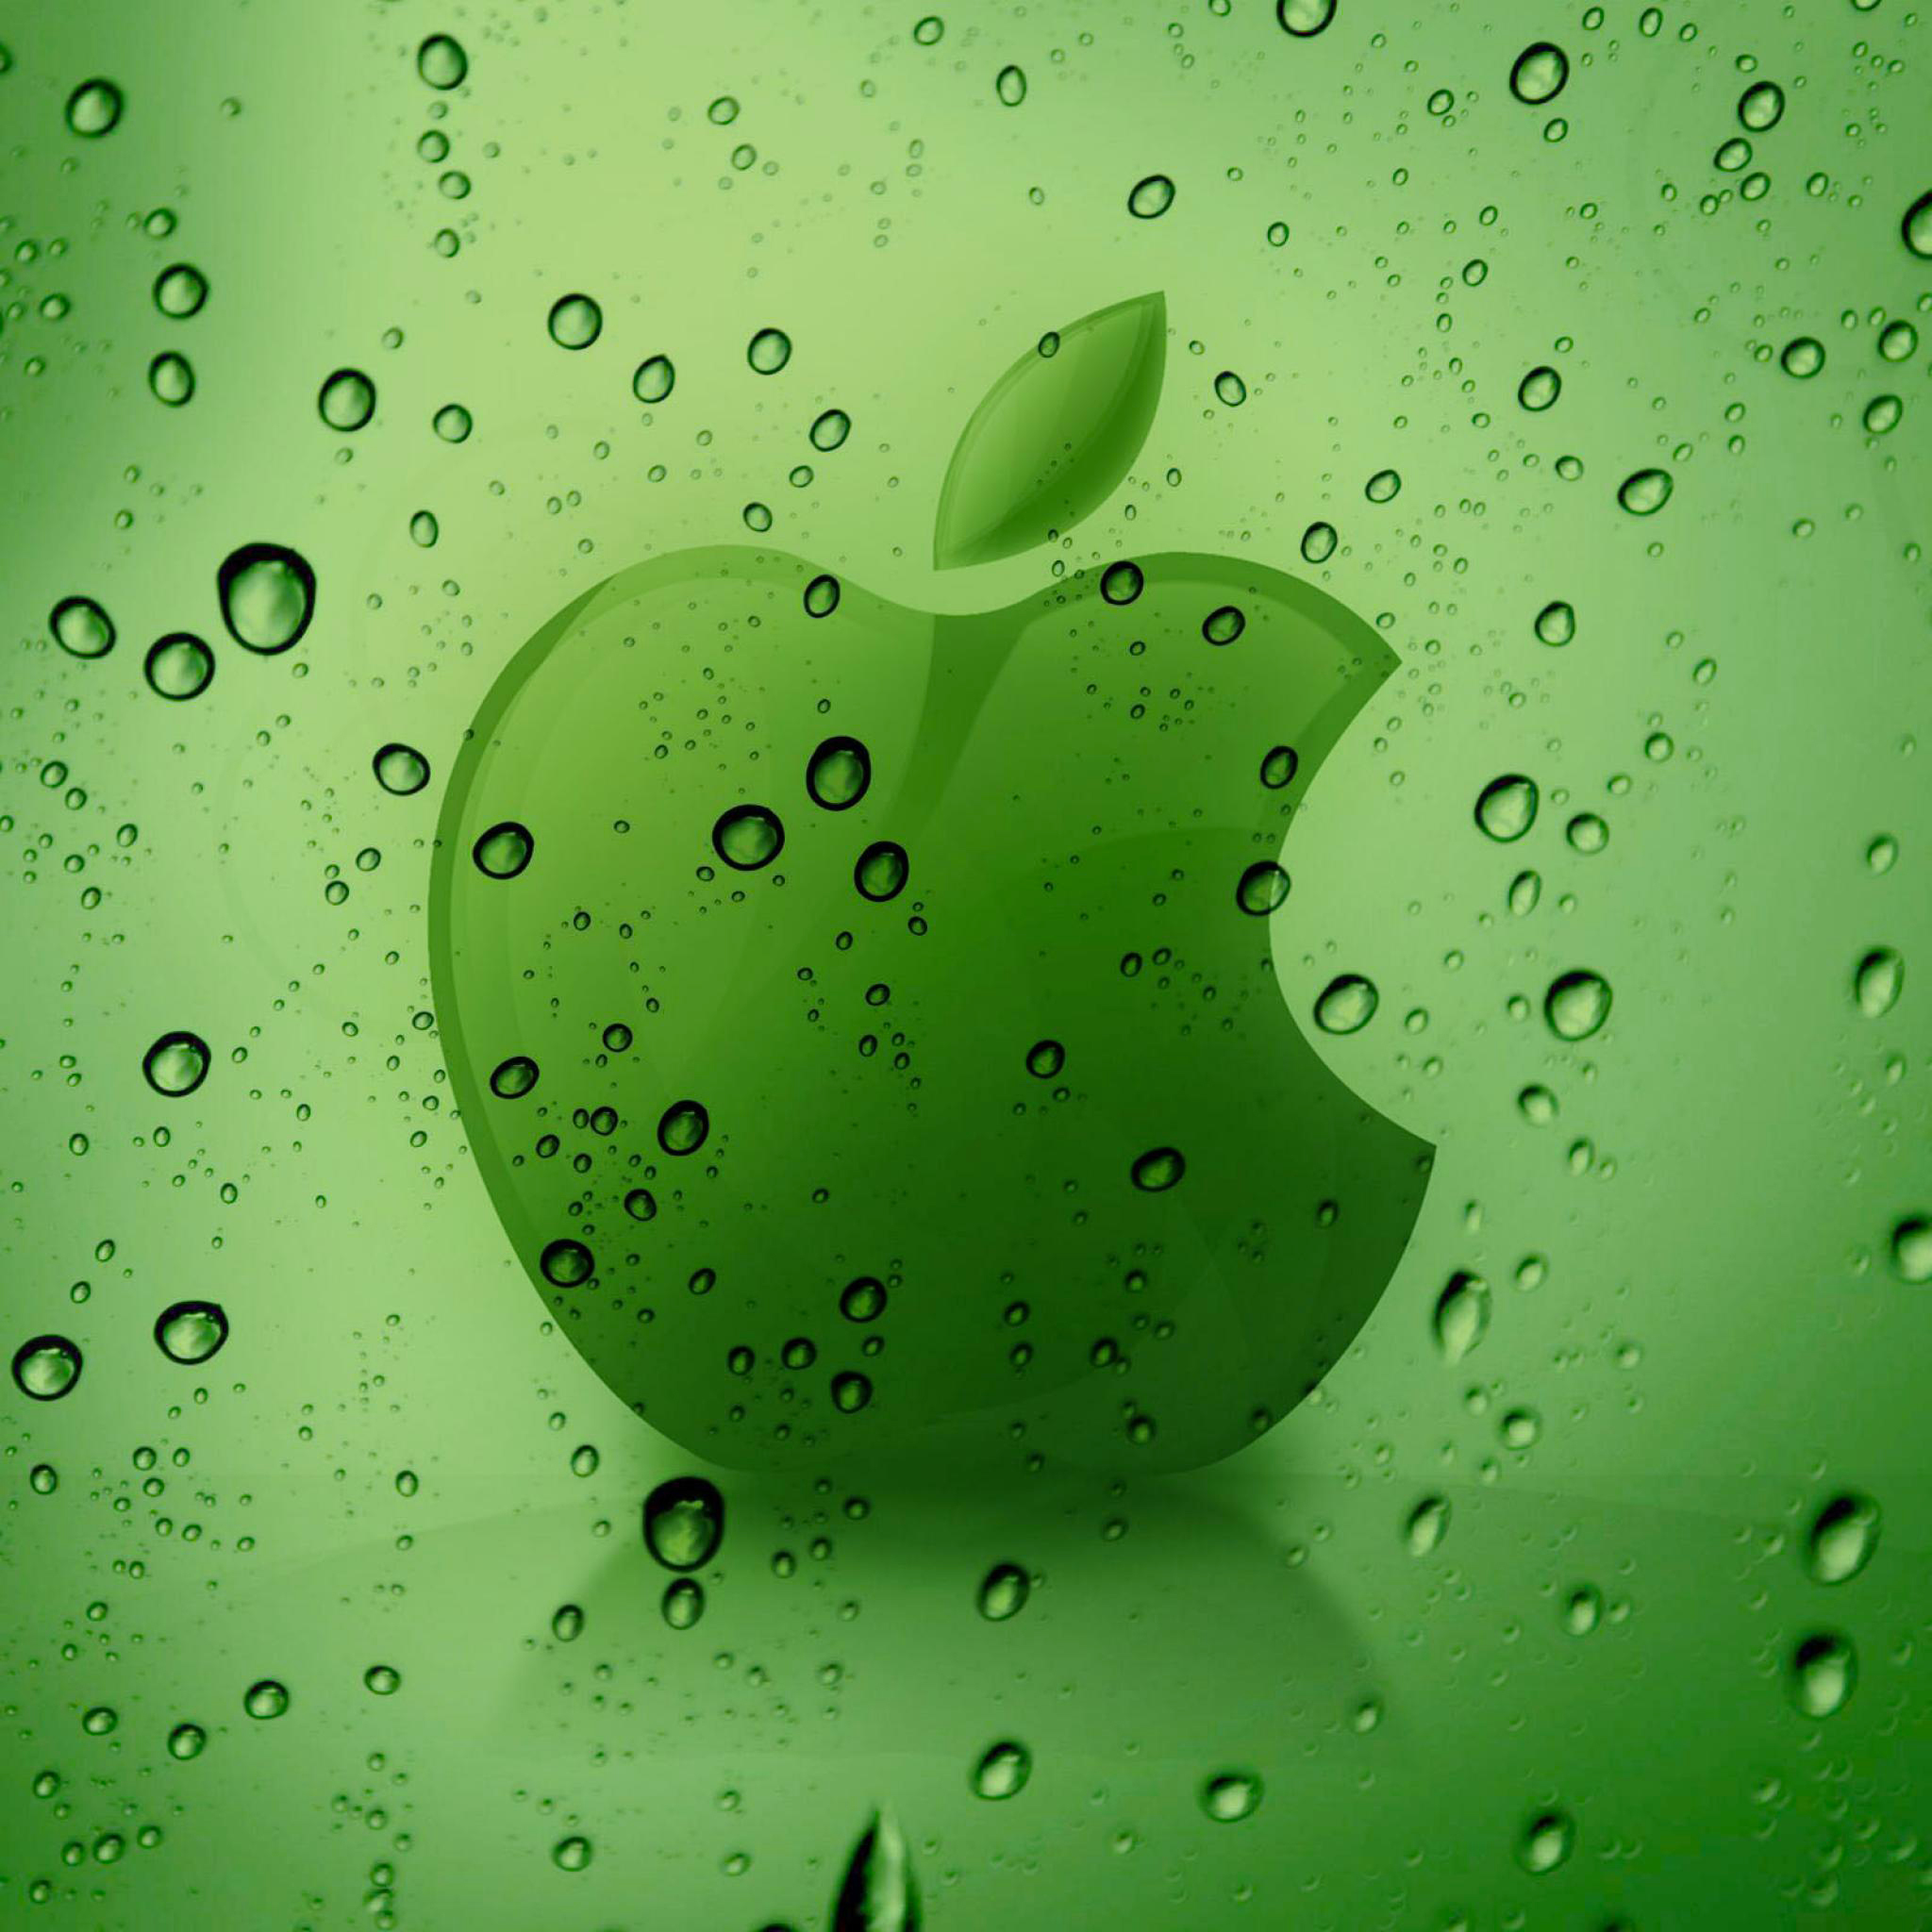 Green Apple Logo 3Wallpaper iPad Retina Green Apple Logo   iPad Retina